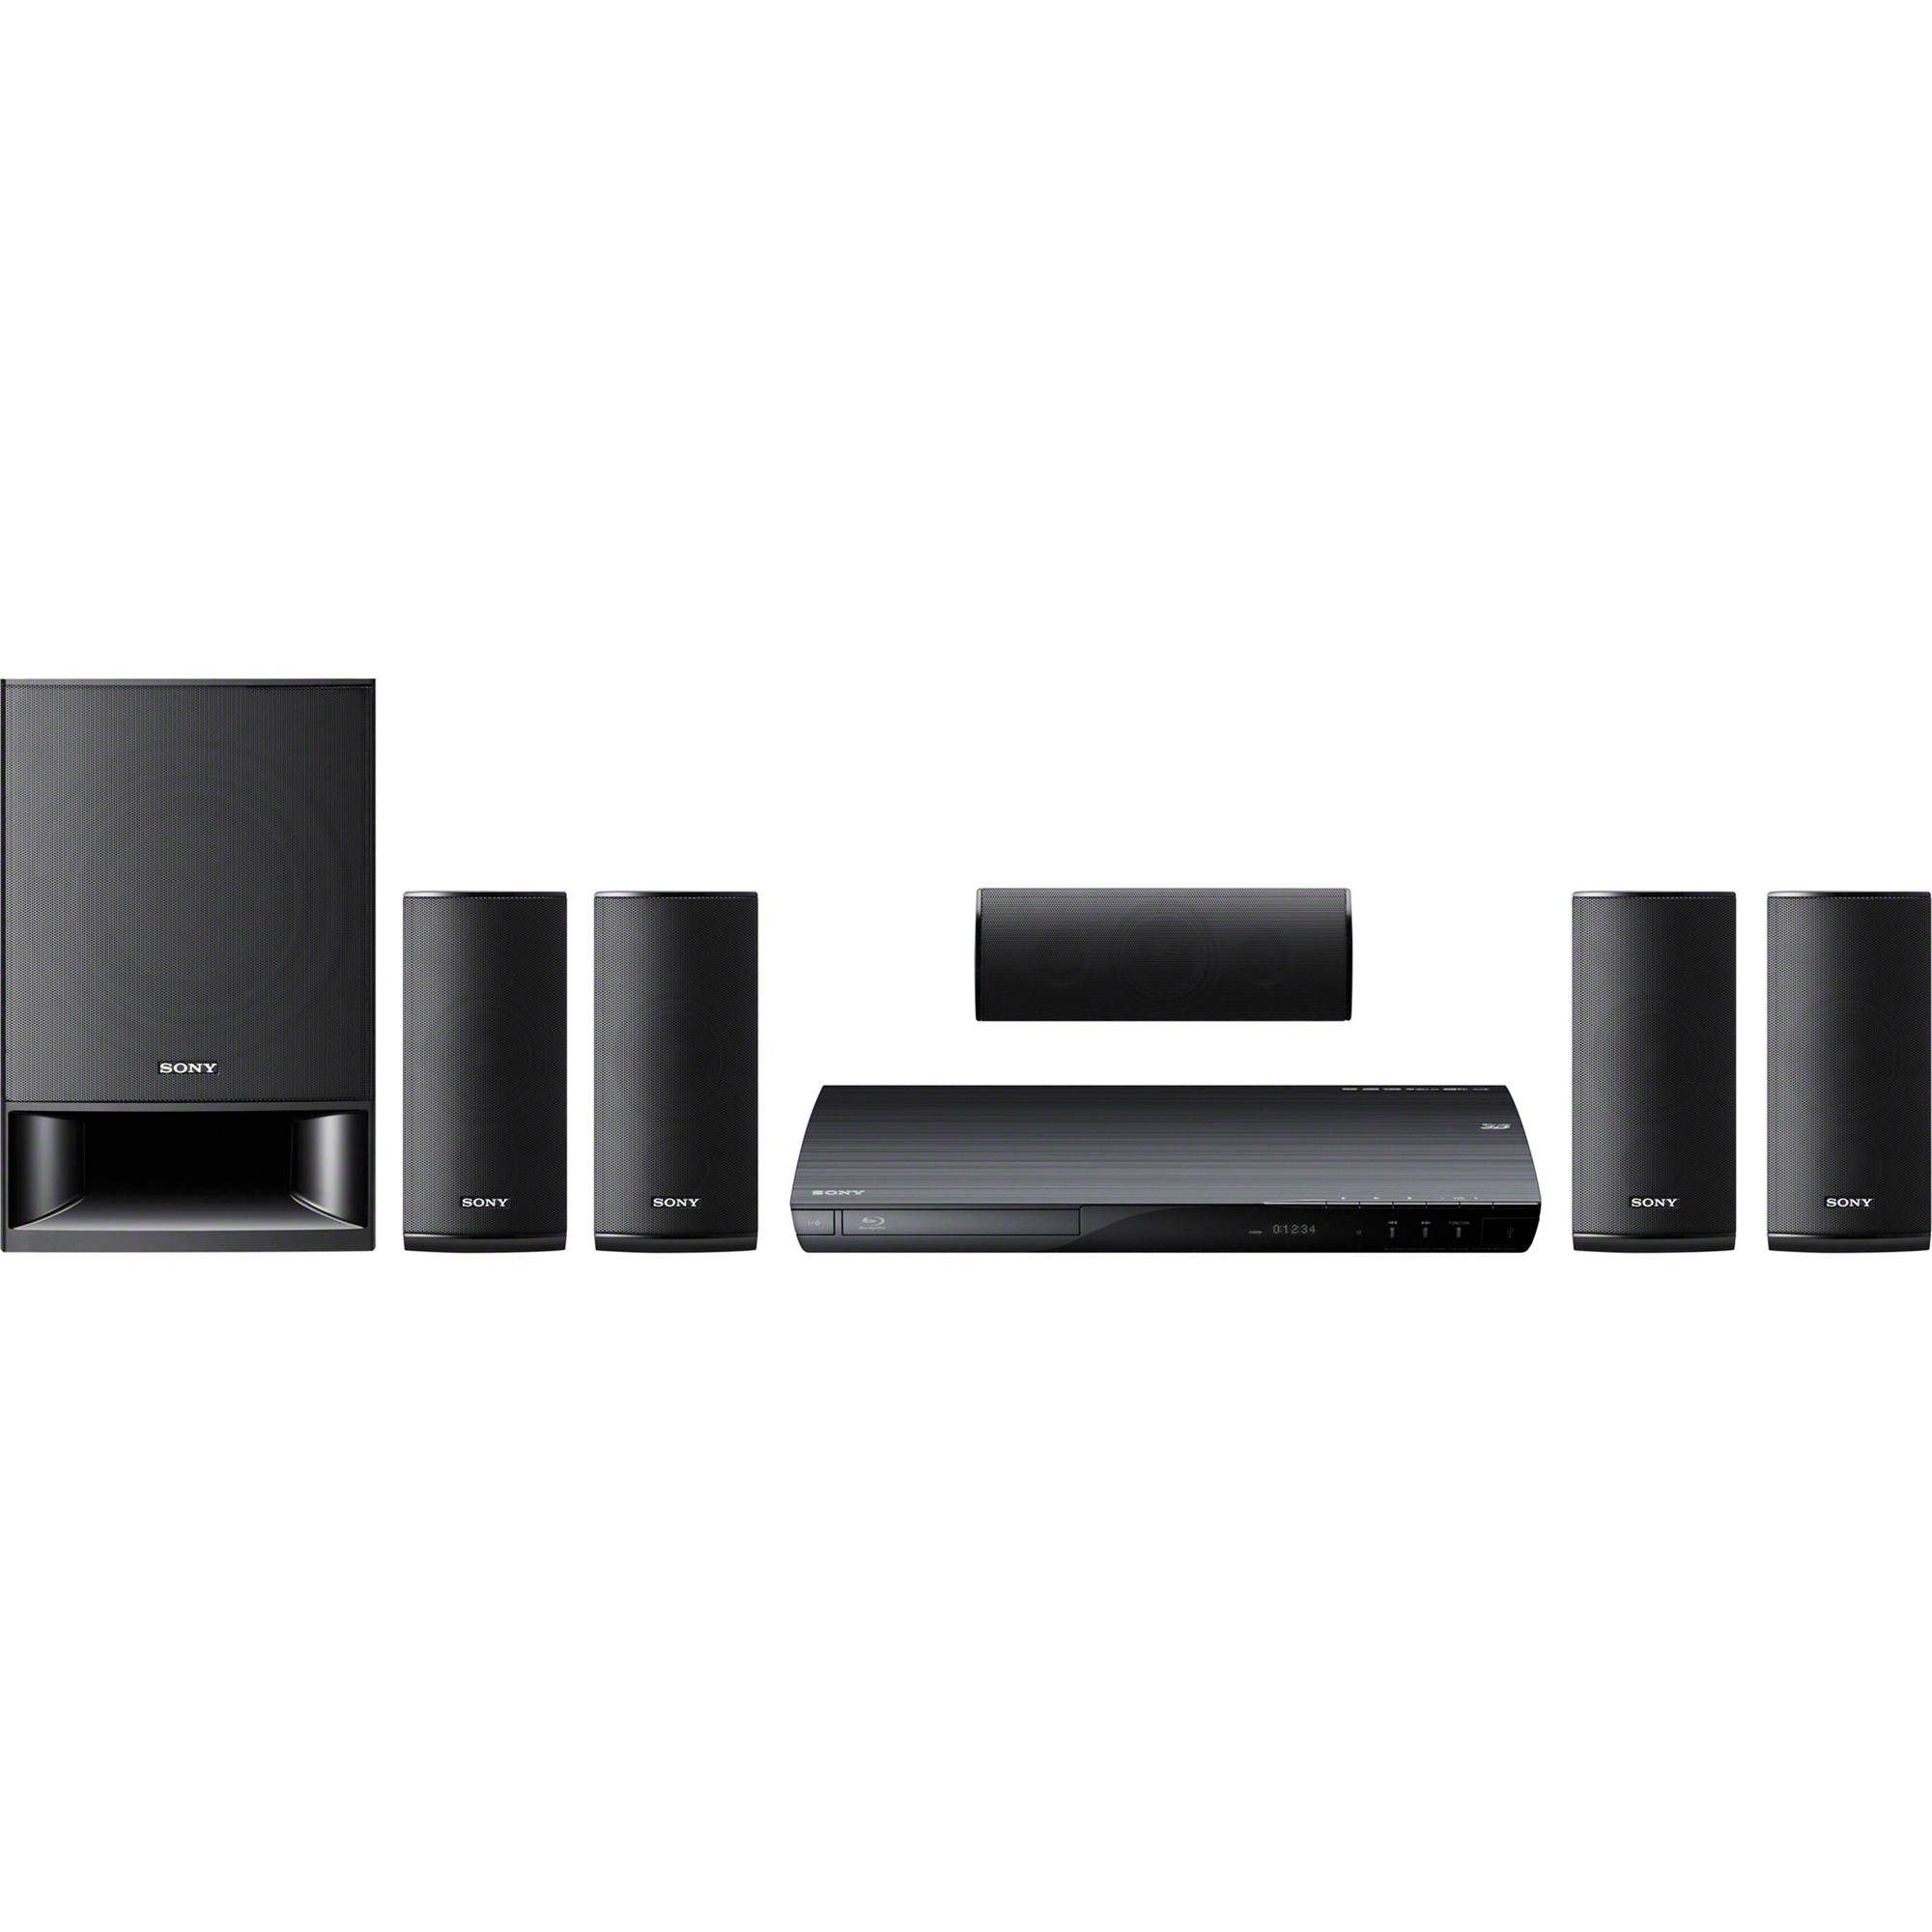 sony bdv e390 5 1 channel 3d blu ray home theater system bdve390 rh bhphotovideo com sony bdv-e3100 home theater system manual sony blu ray home theater system manual